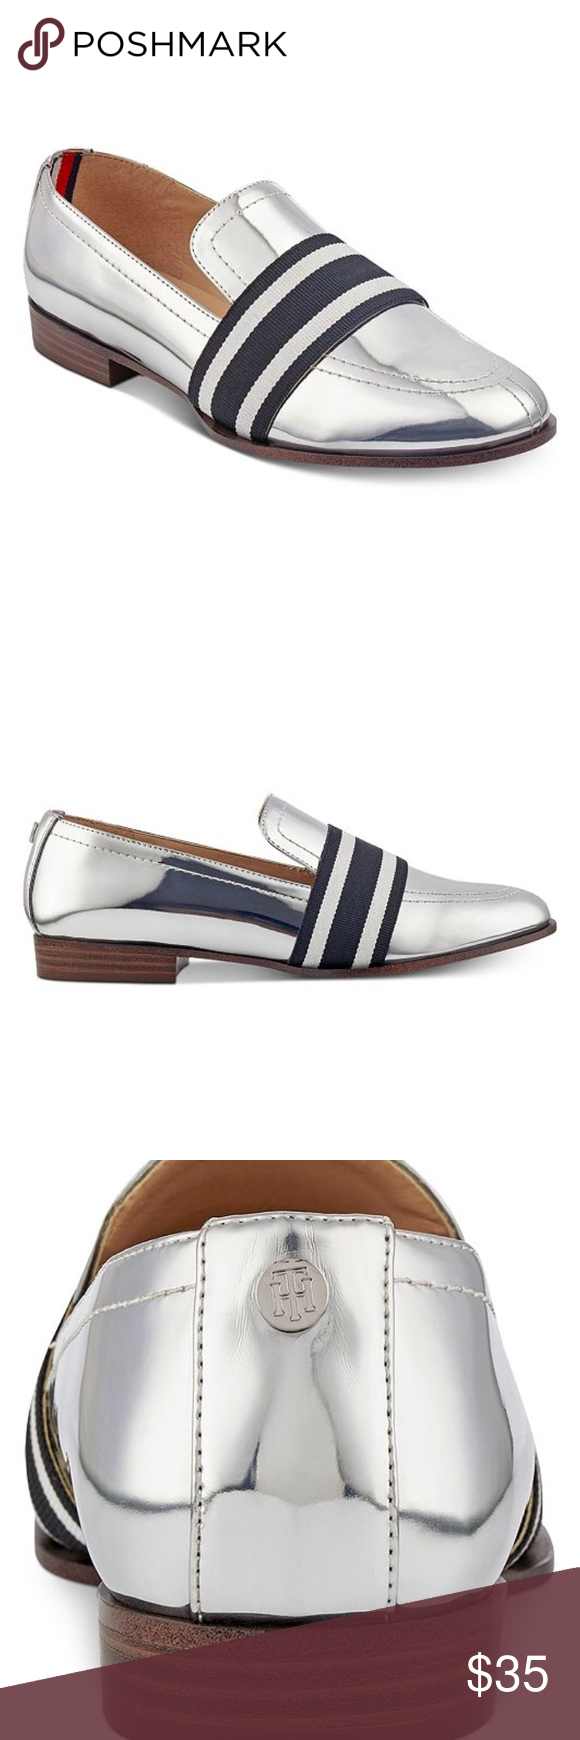 e05fa7c07 Tmmy Hilfiger silver loafers Tommy Hilfiger Women s Ignaz Loafers. Never  used Tommy Hilfiger Shoes Flats   Loafers